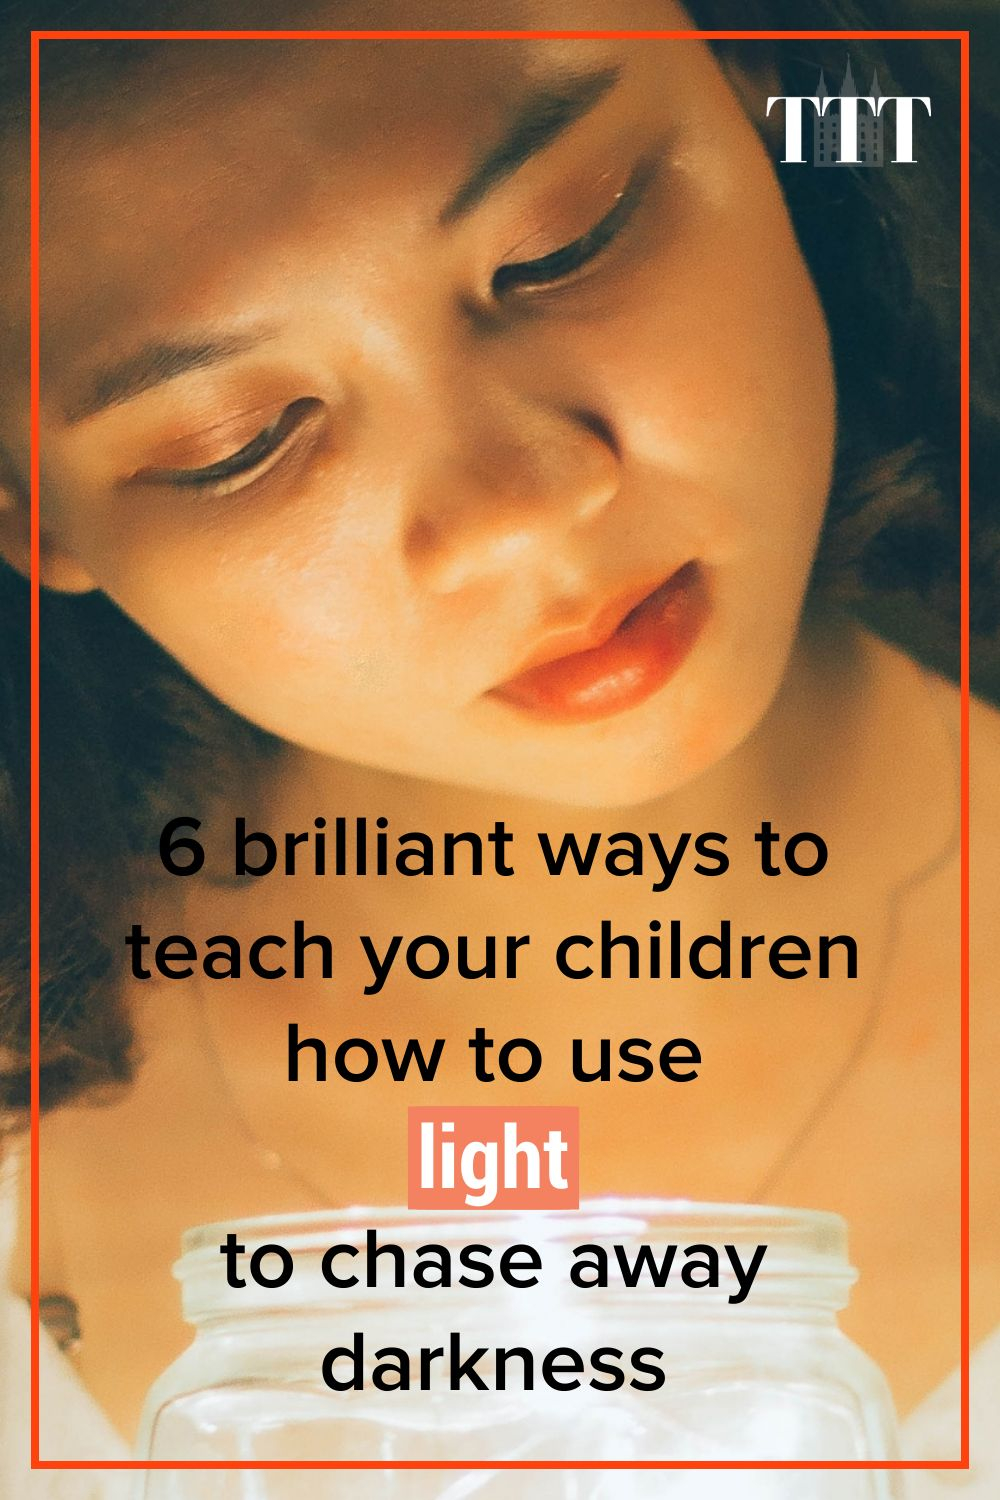 6 brilliant ways to teach kids how to chase darkness away with light